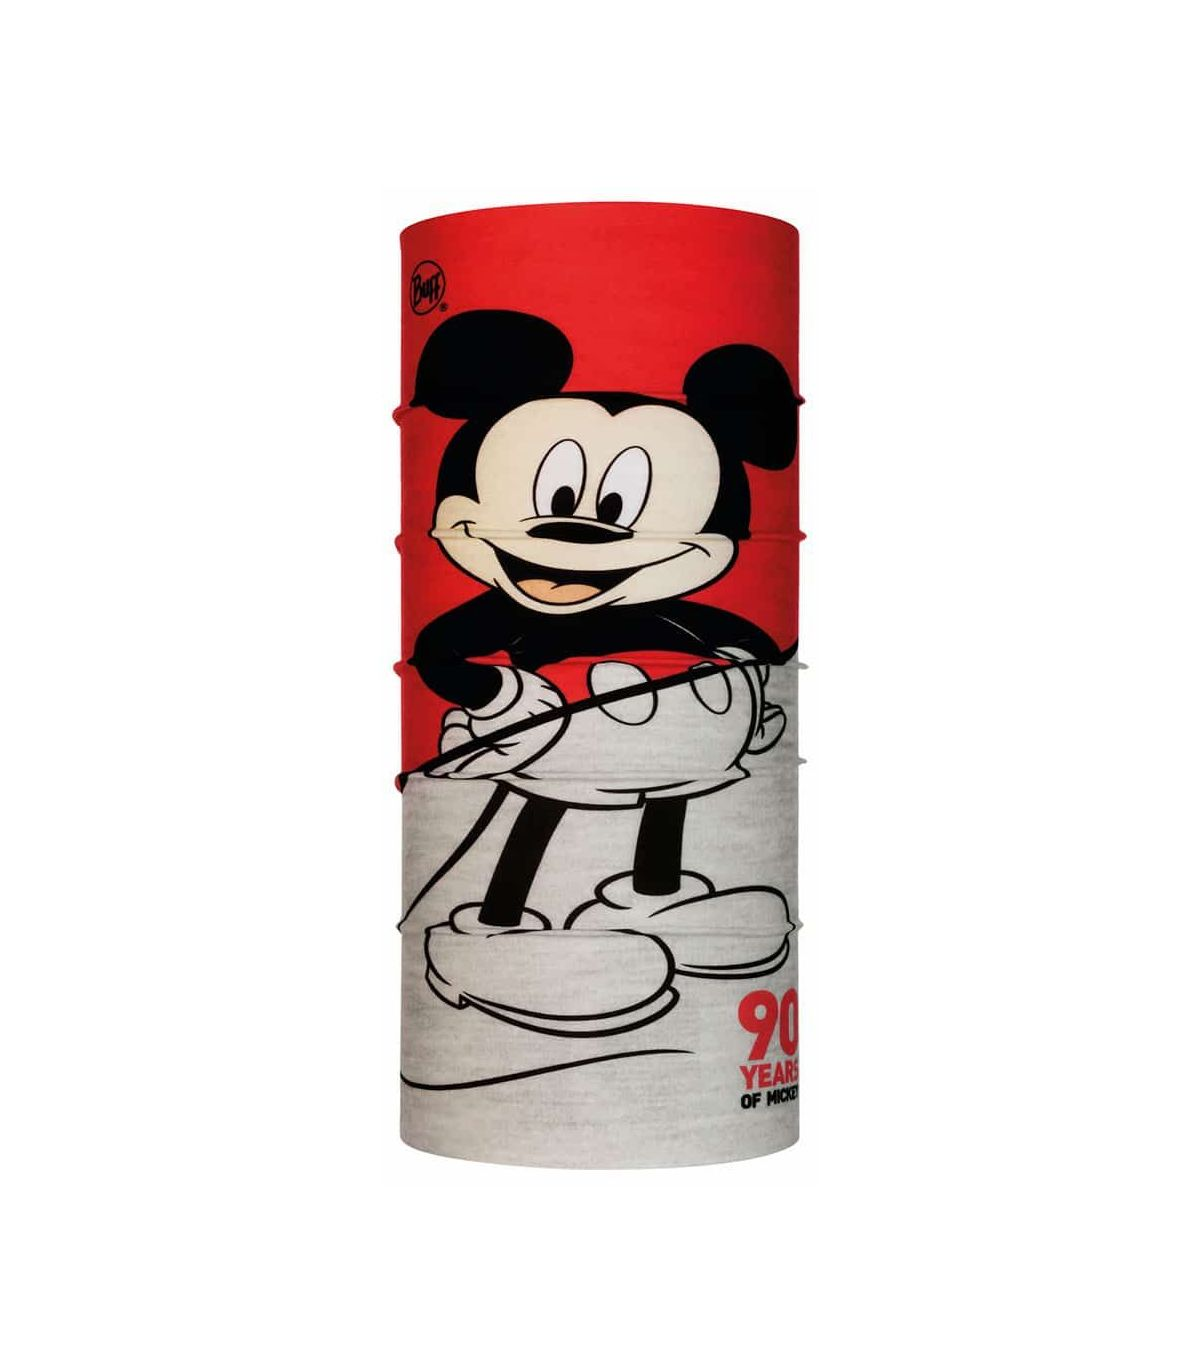 Buff Junior Buff Mickey Mouse 90th Buff Buff Mountain Mountain Color: red